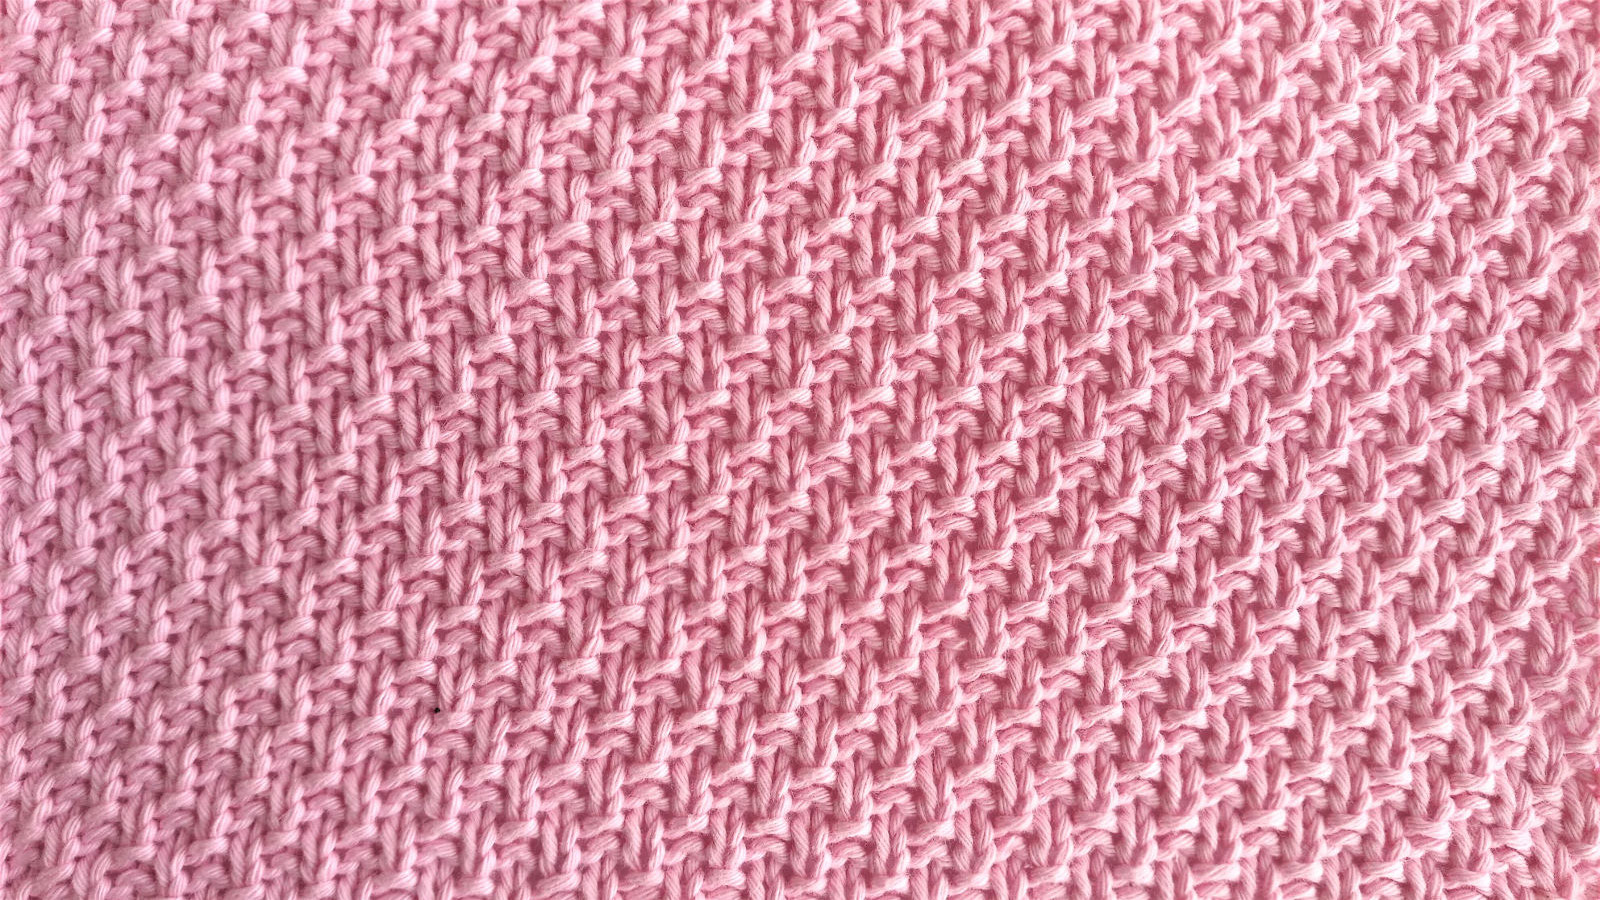 double seed stitch wrong side